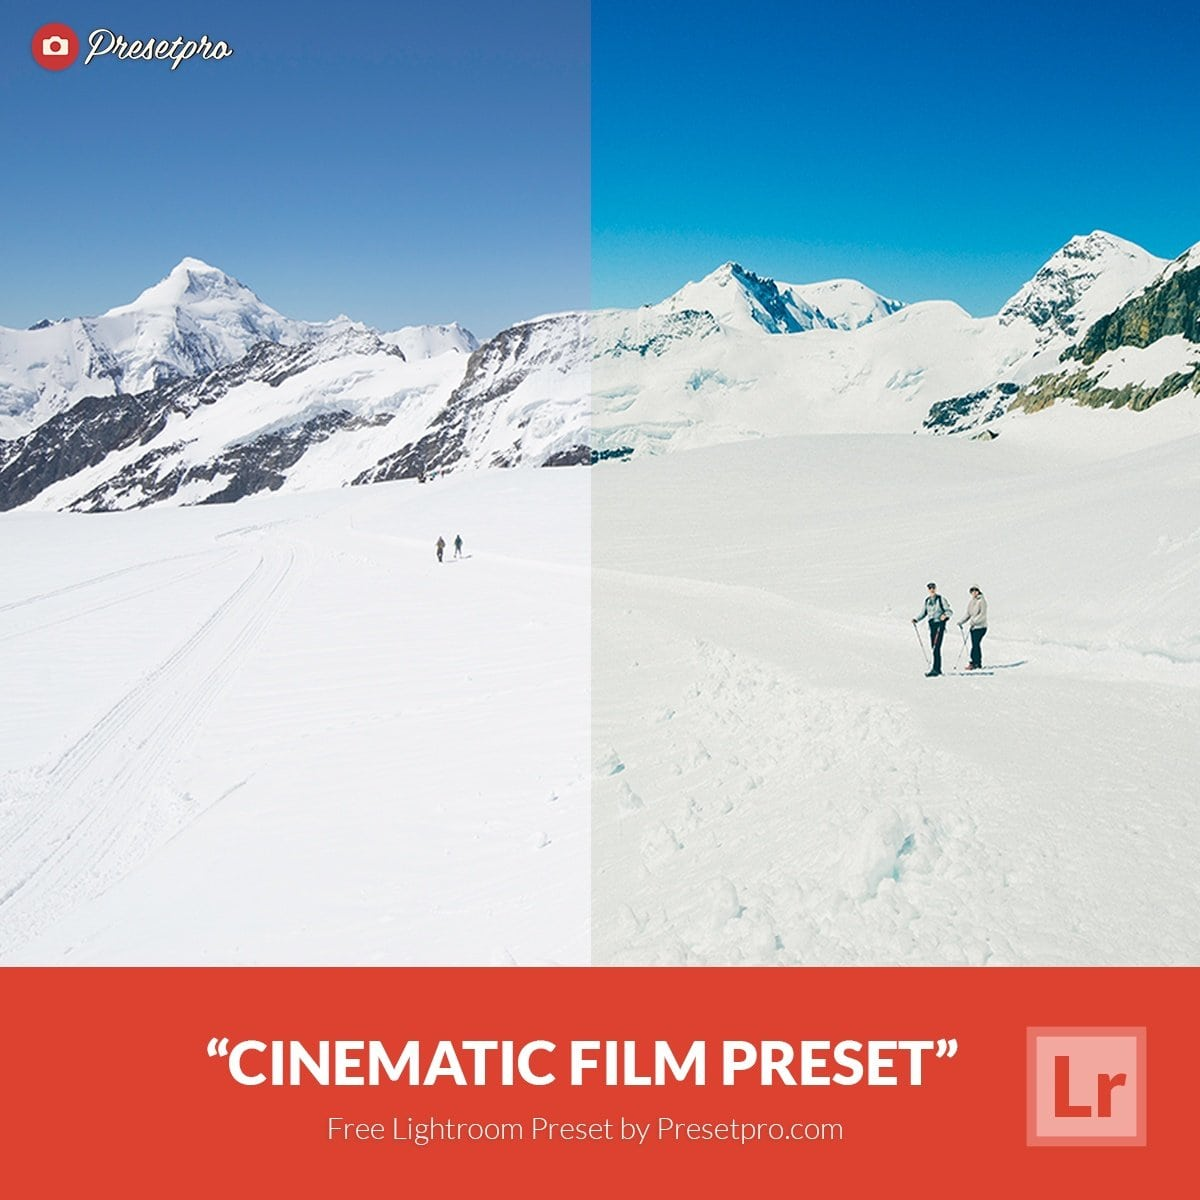 Free-Lightroom-Preset-Cinematic-Film-Presetpro.com